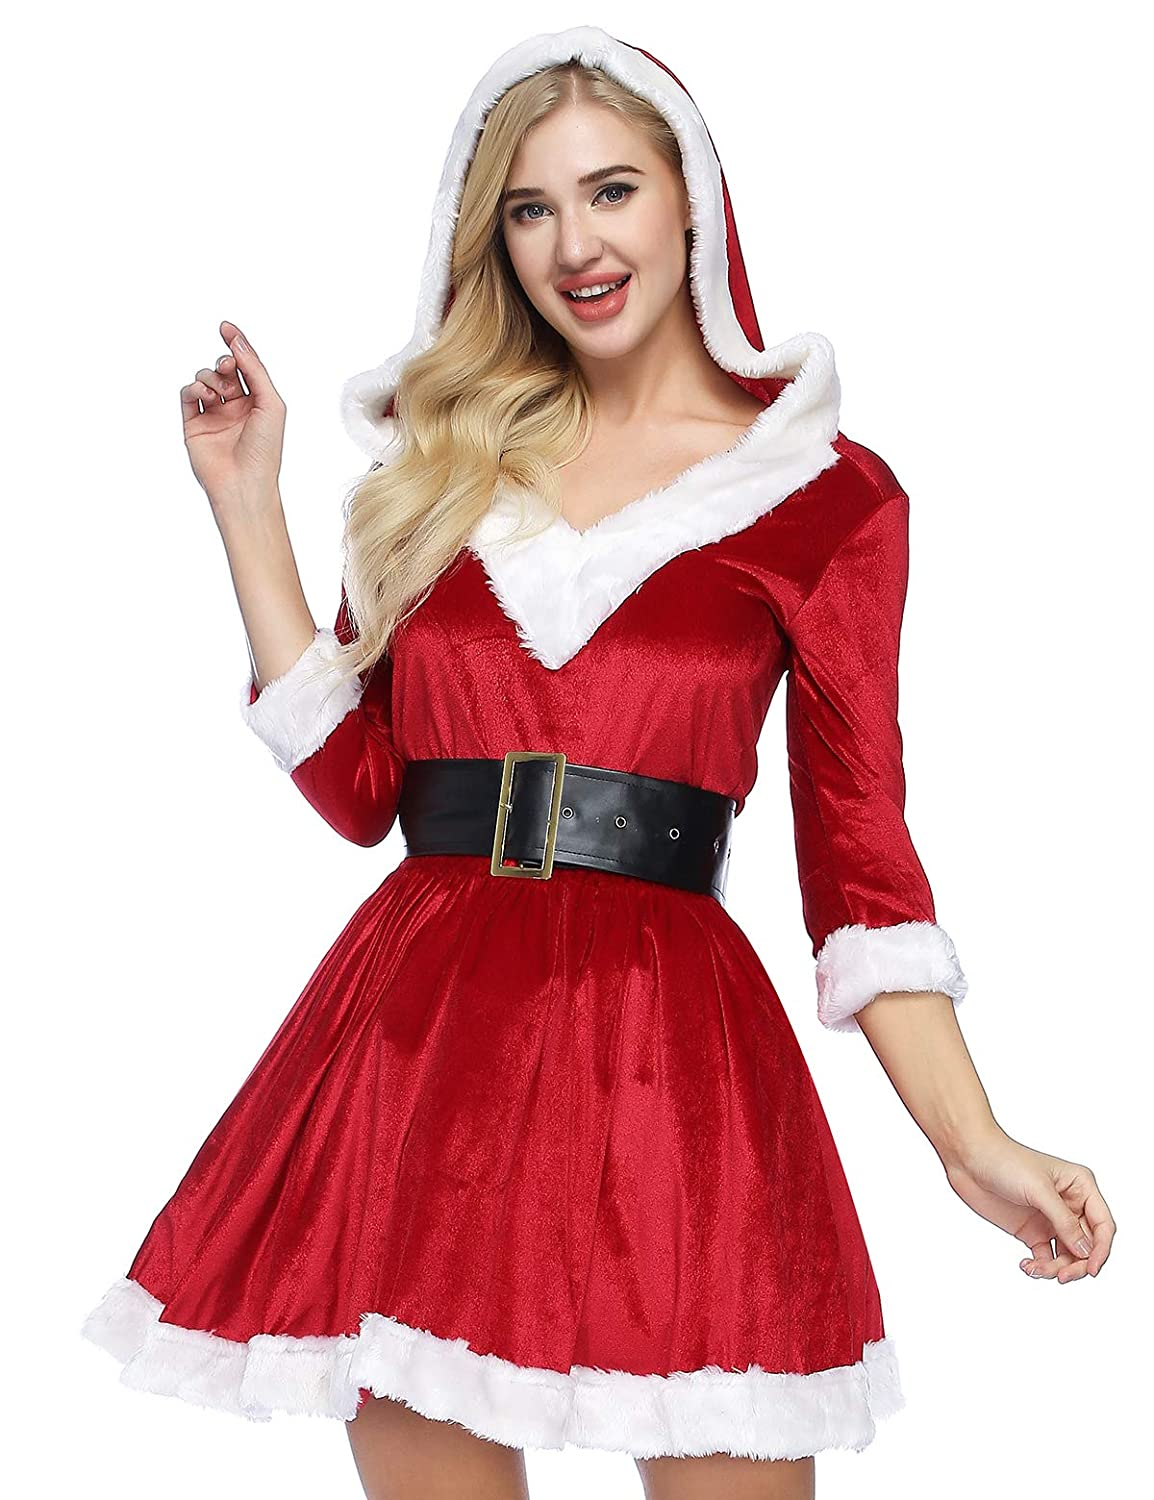 553bff016f1 Amazon.com  ADOMI Women s 2 Piece Mrs. Claus Costume Santa Baby Costume   Clothing